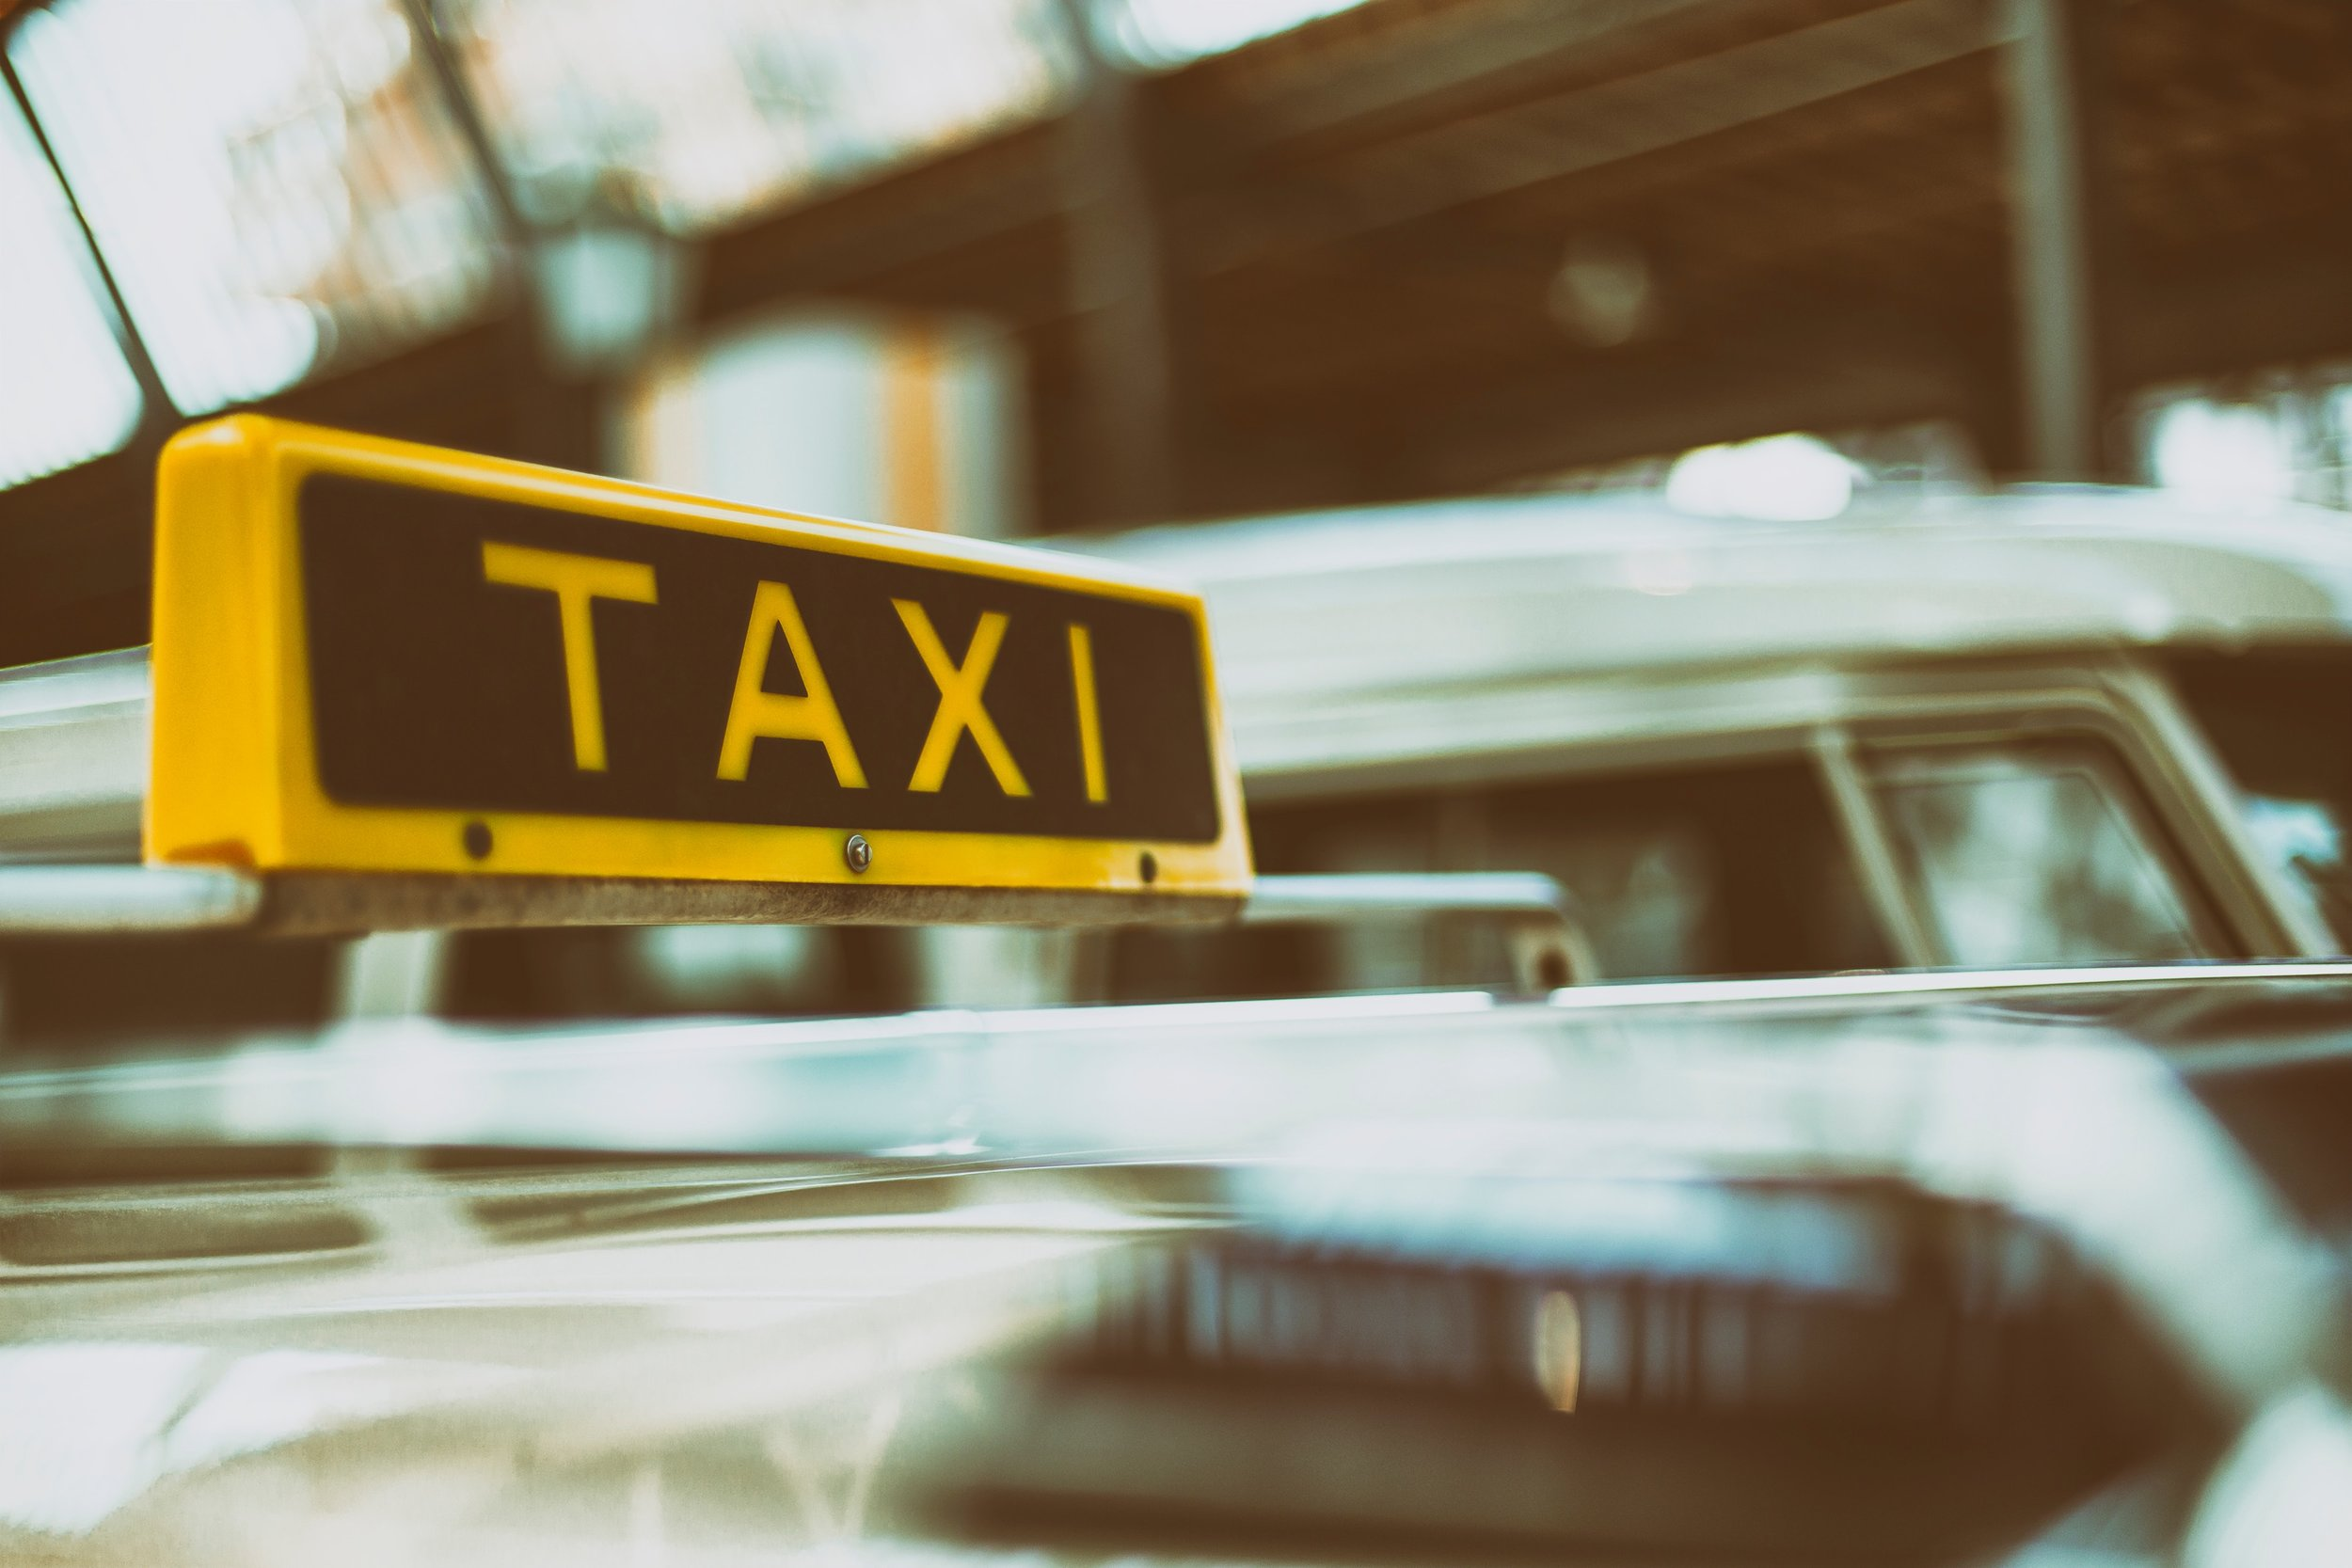 Taxis in Rio were not my favorite - I suggest taking uber